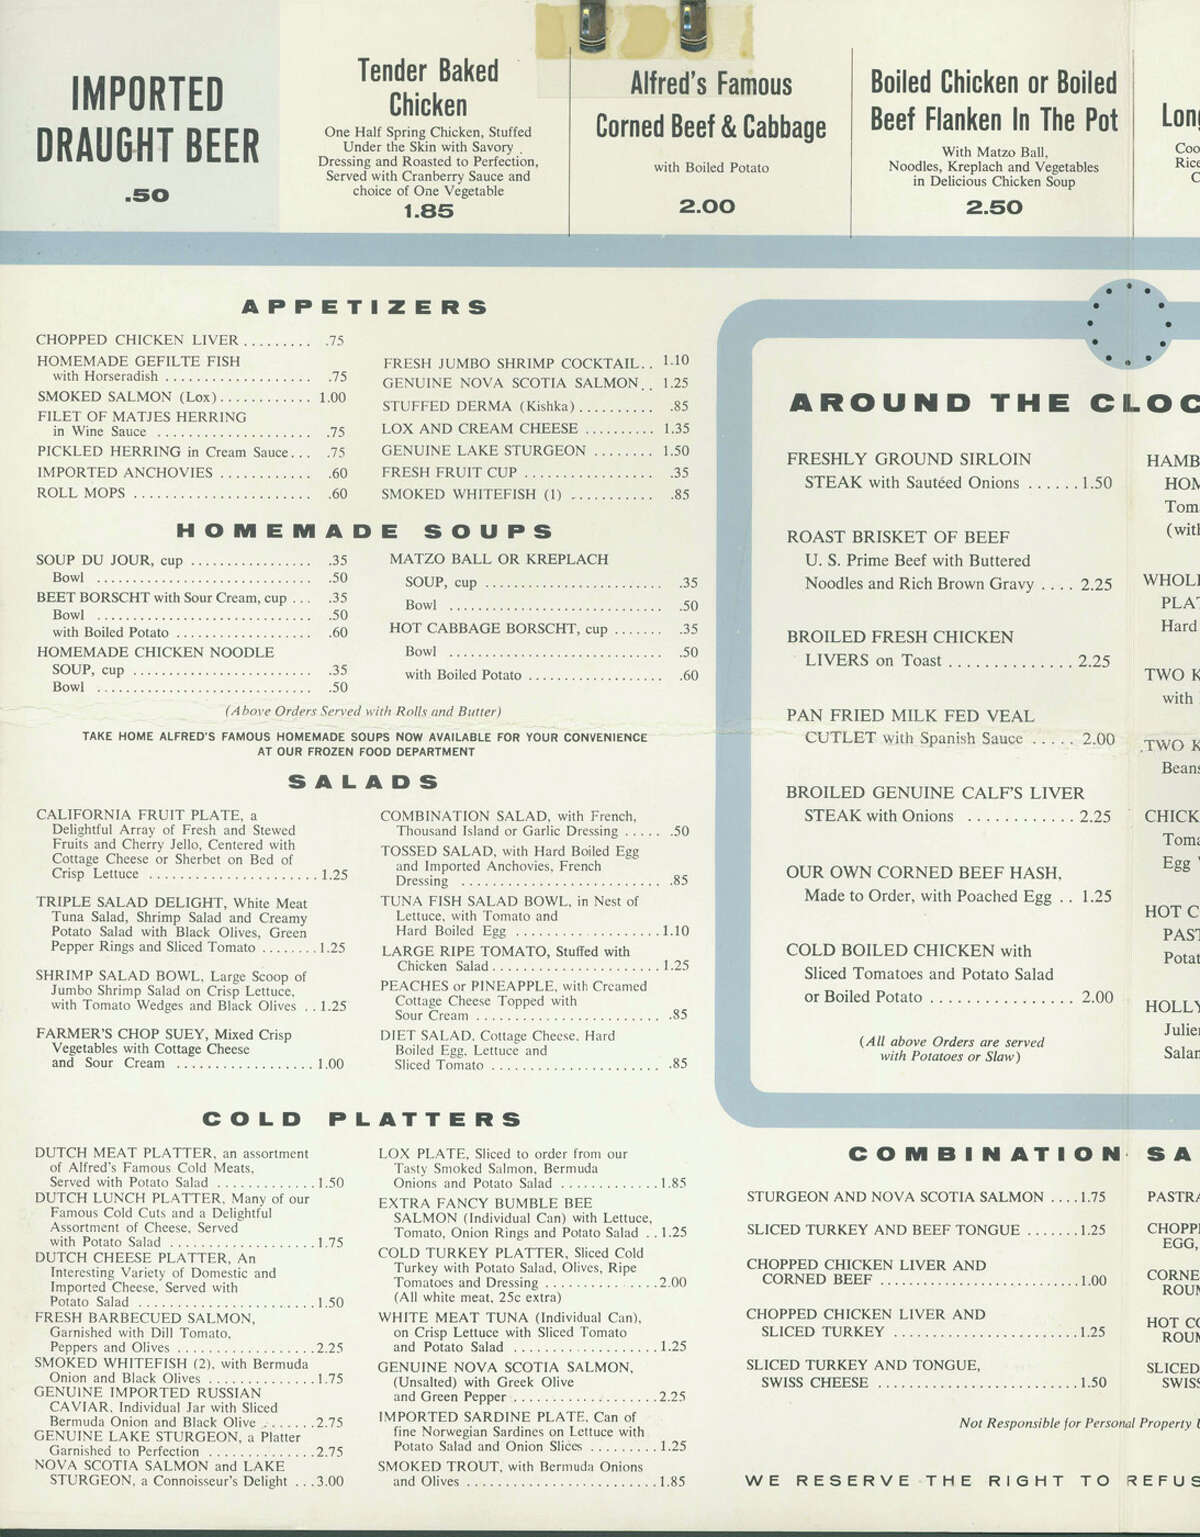 This was one half of a sprawling menu seen by customers at the old Alfred's chain in Houston.  Vintage Houston restaurant menu courtesy University of Houston Conrad N. Hilton College of Hotel and Restaurant Management.